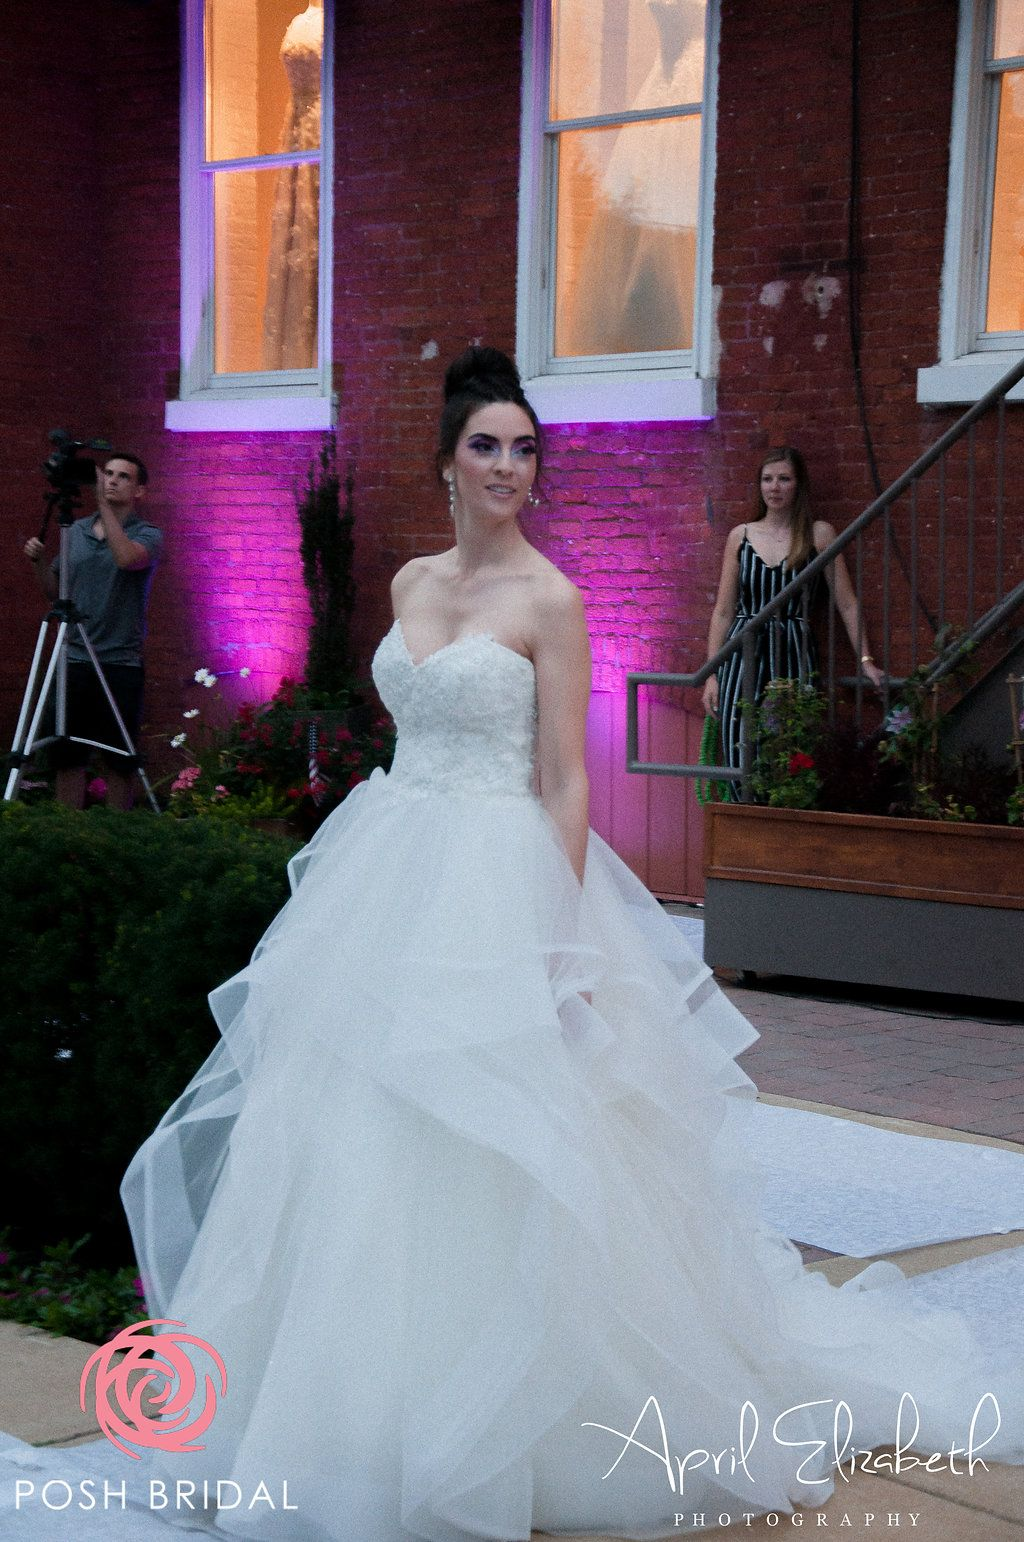 a45fb2525 Randy Fenoli Wedding Gown - Rebecca - Sheer, Sparkling, Beaded Lace Bodice  on a Full Ball Gown Skirt of Flounced Layers of Tulle, Trimmed with  Horsehair and ...